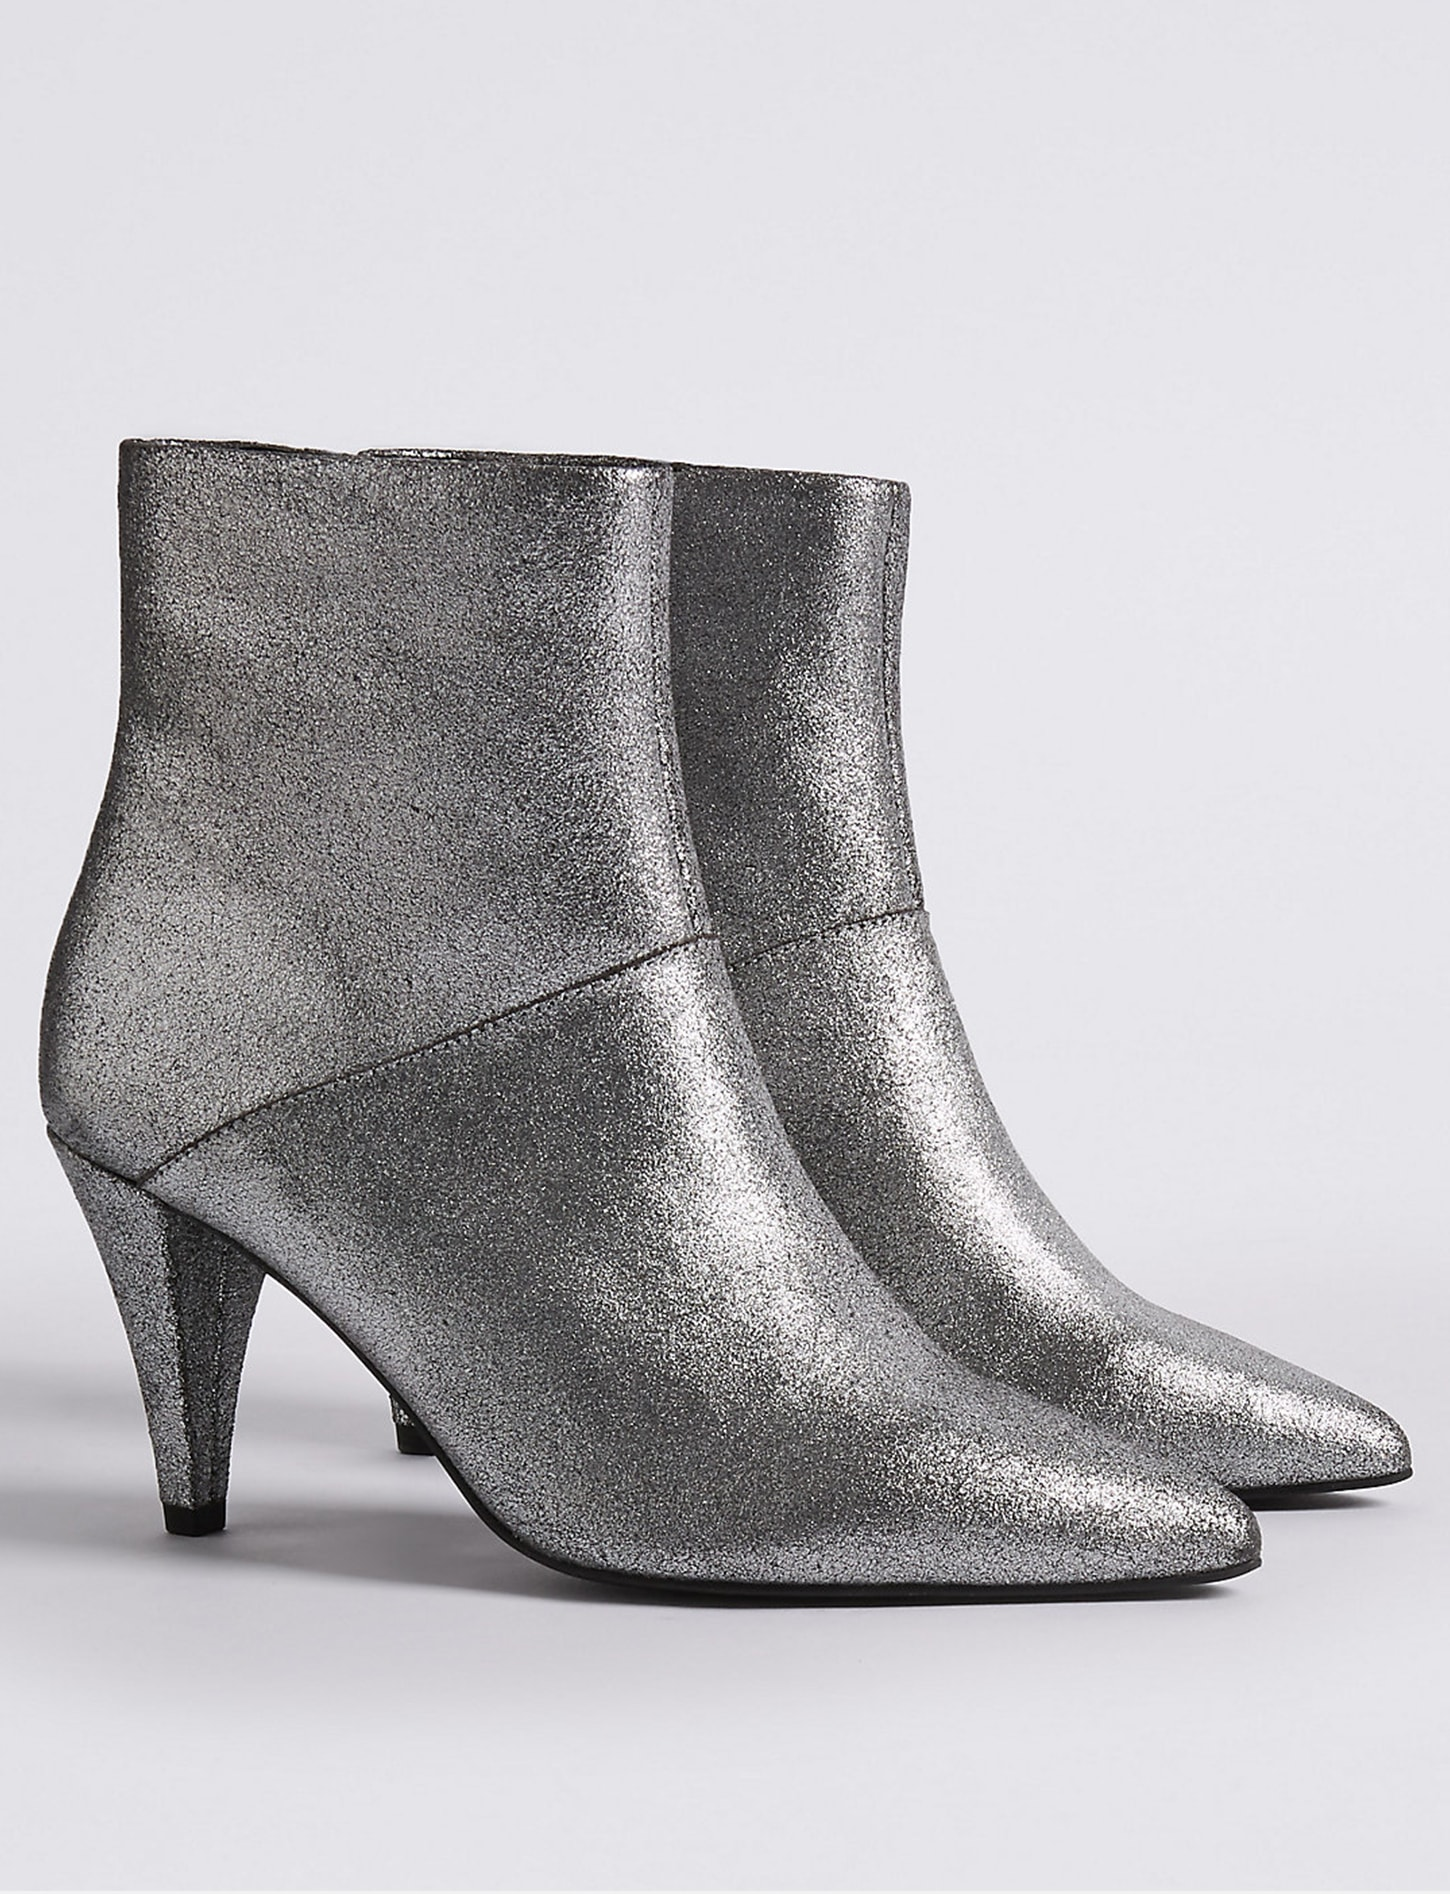 M&S leather silver boots